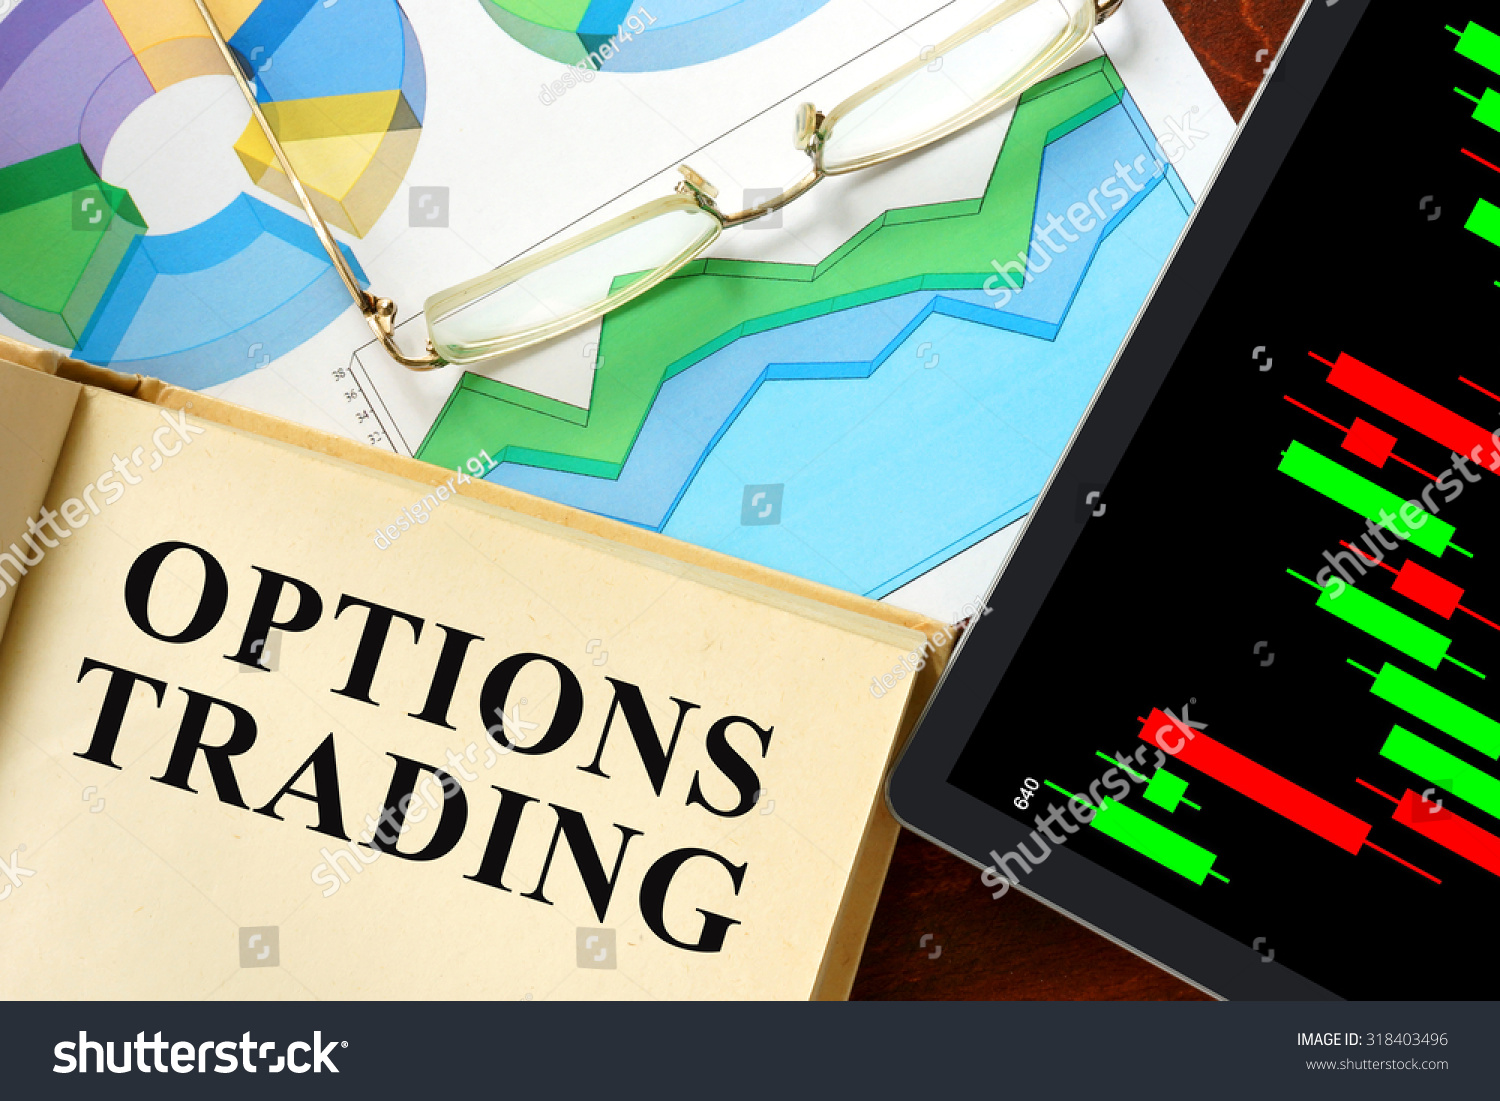 Options trading free book